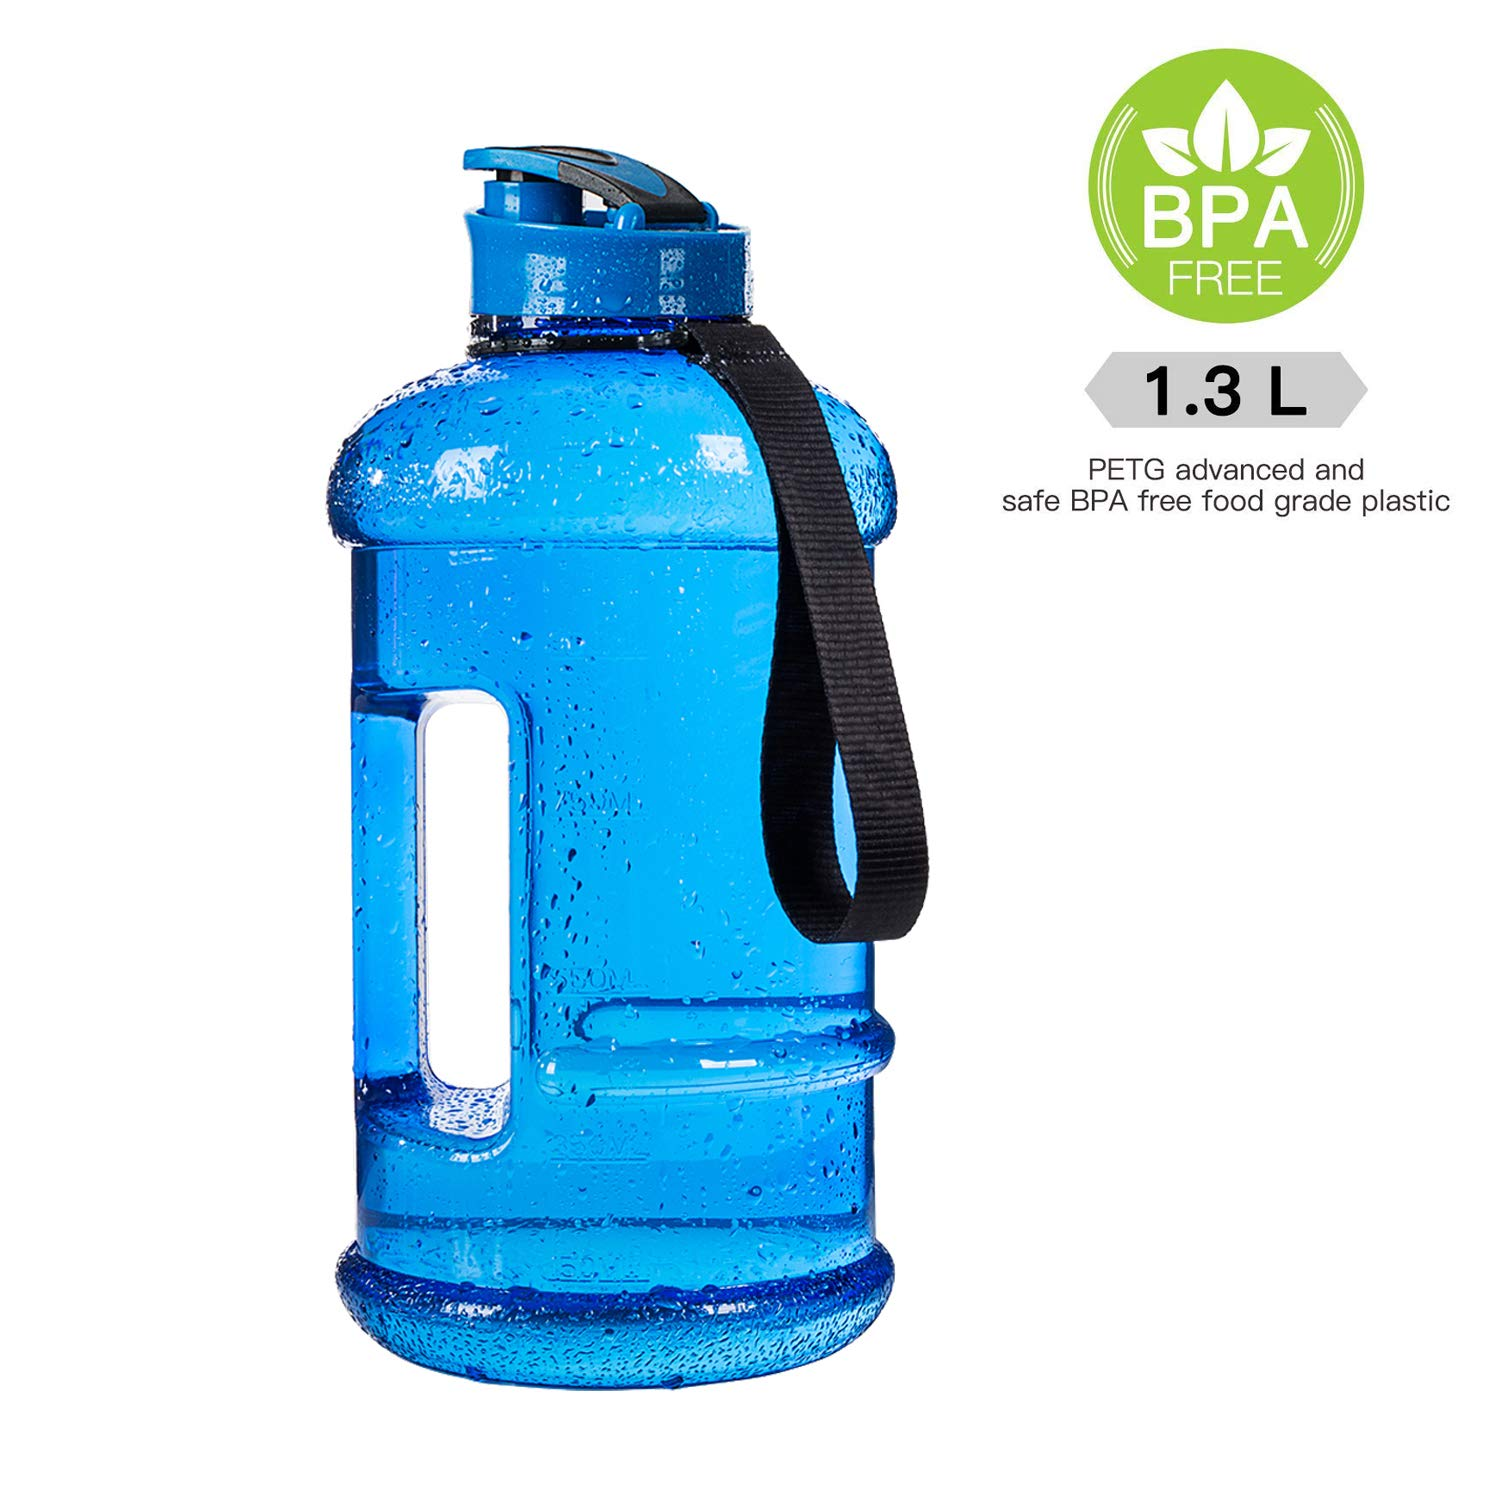 1.3l dishwashersafe transparent blueee 44oz Moonice Half Gallon Dishwasher Safe 2.2l Litre and 1.3l Big Capacity BPA Free Leakproof Plastic Gym Sports Water Bottle Large Drinking Water Jug Hydrate Container